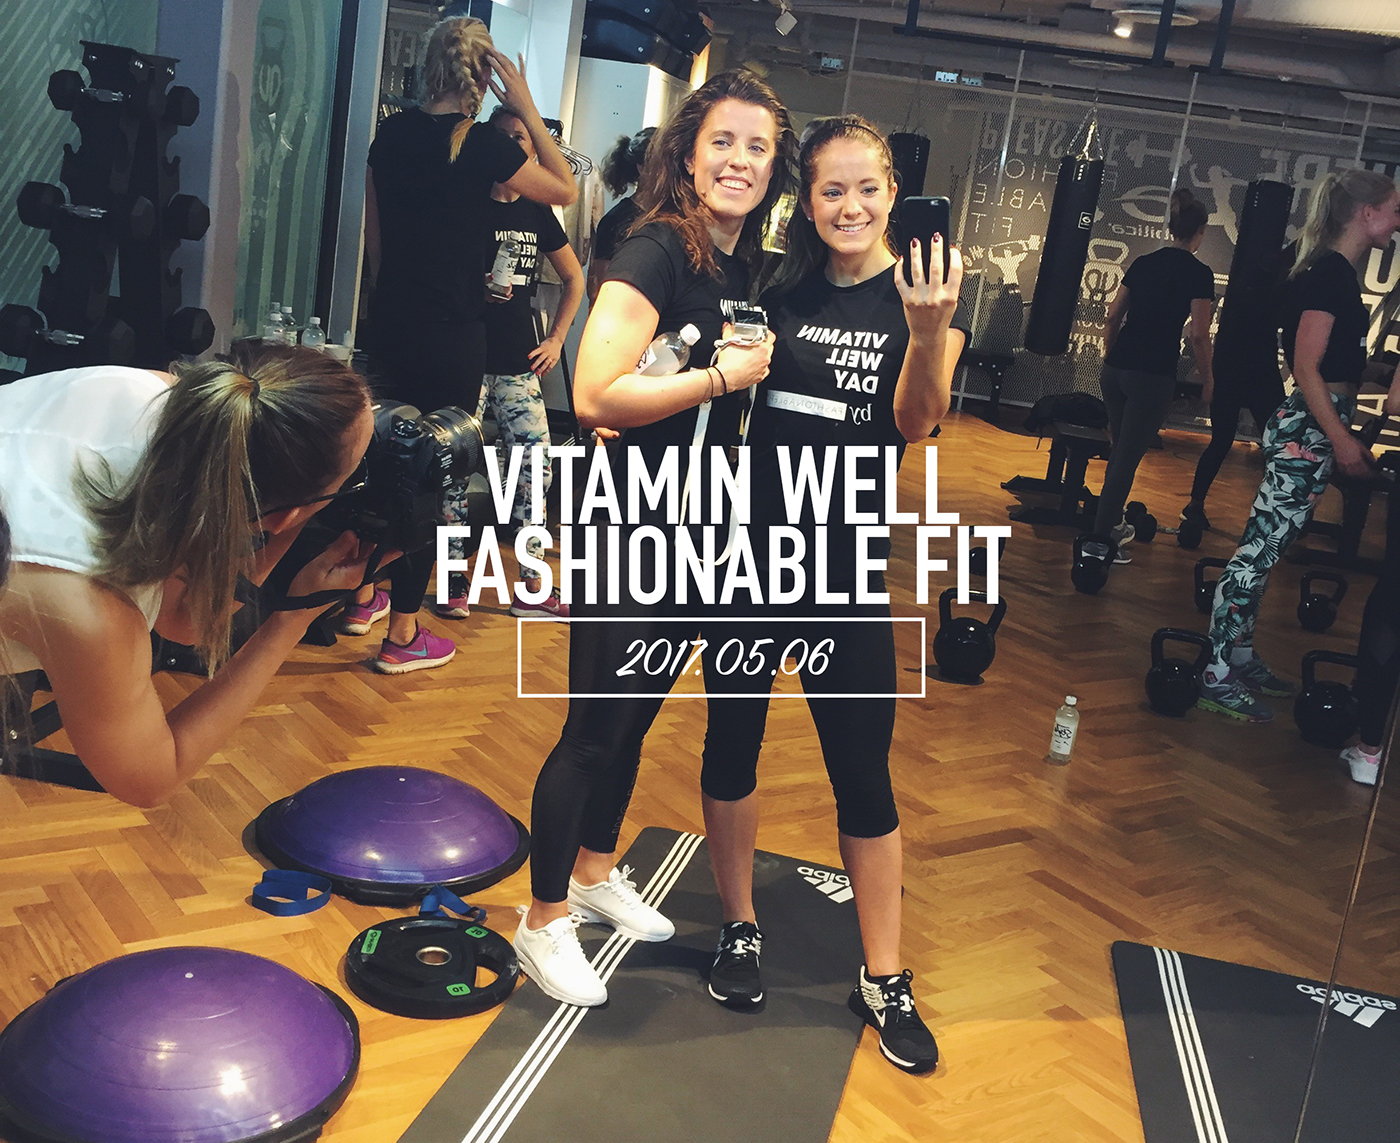 isabel-boltenstern-vitamin-well-fashionable-fit